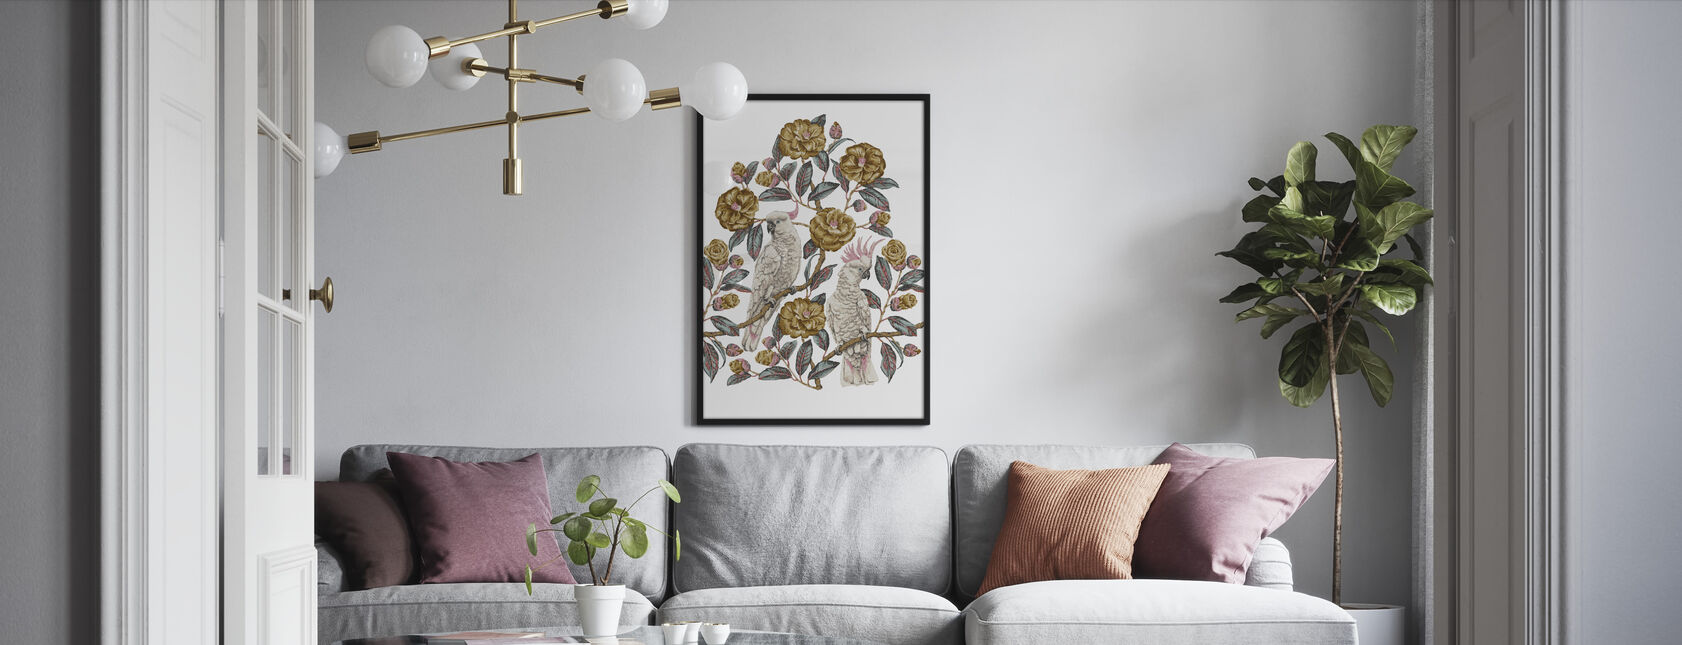 Cockatoo Paradise - Honey and Silver - Framed print - Living Room